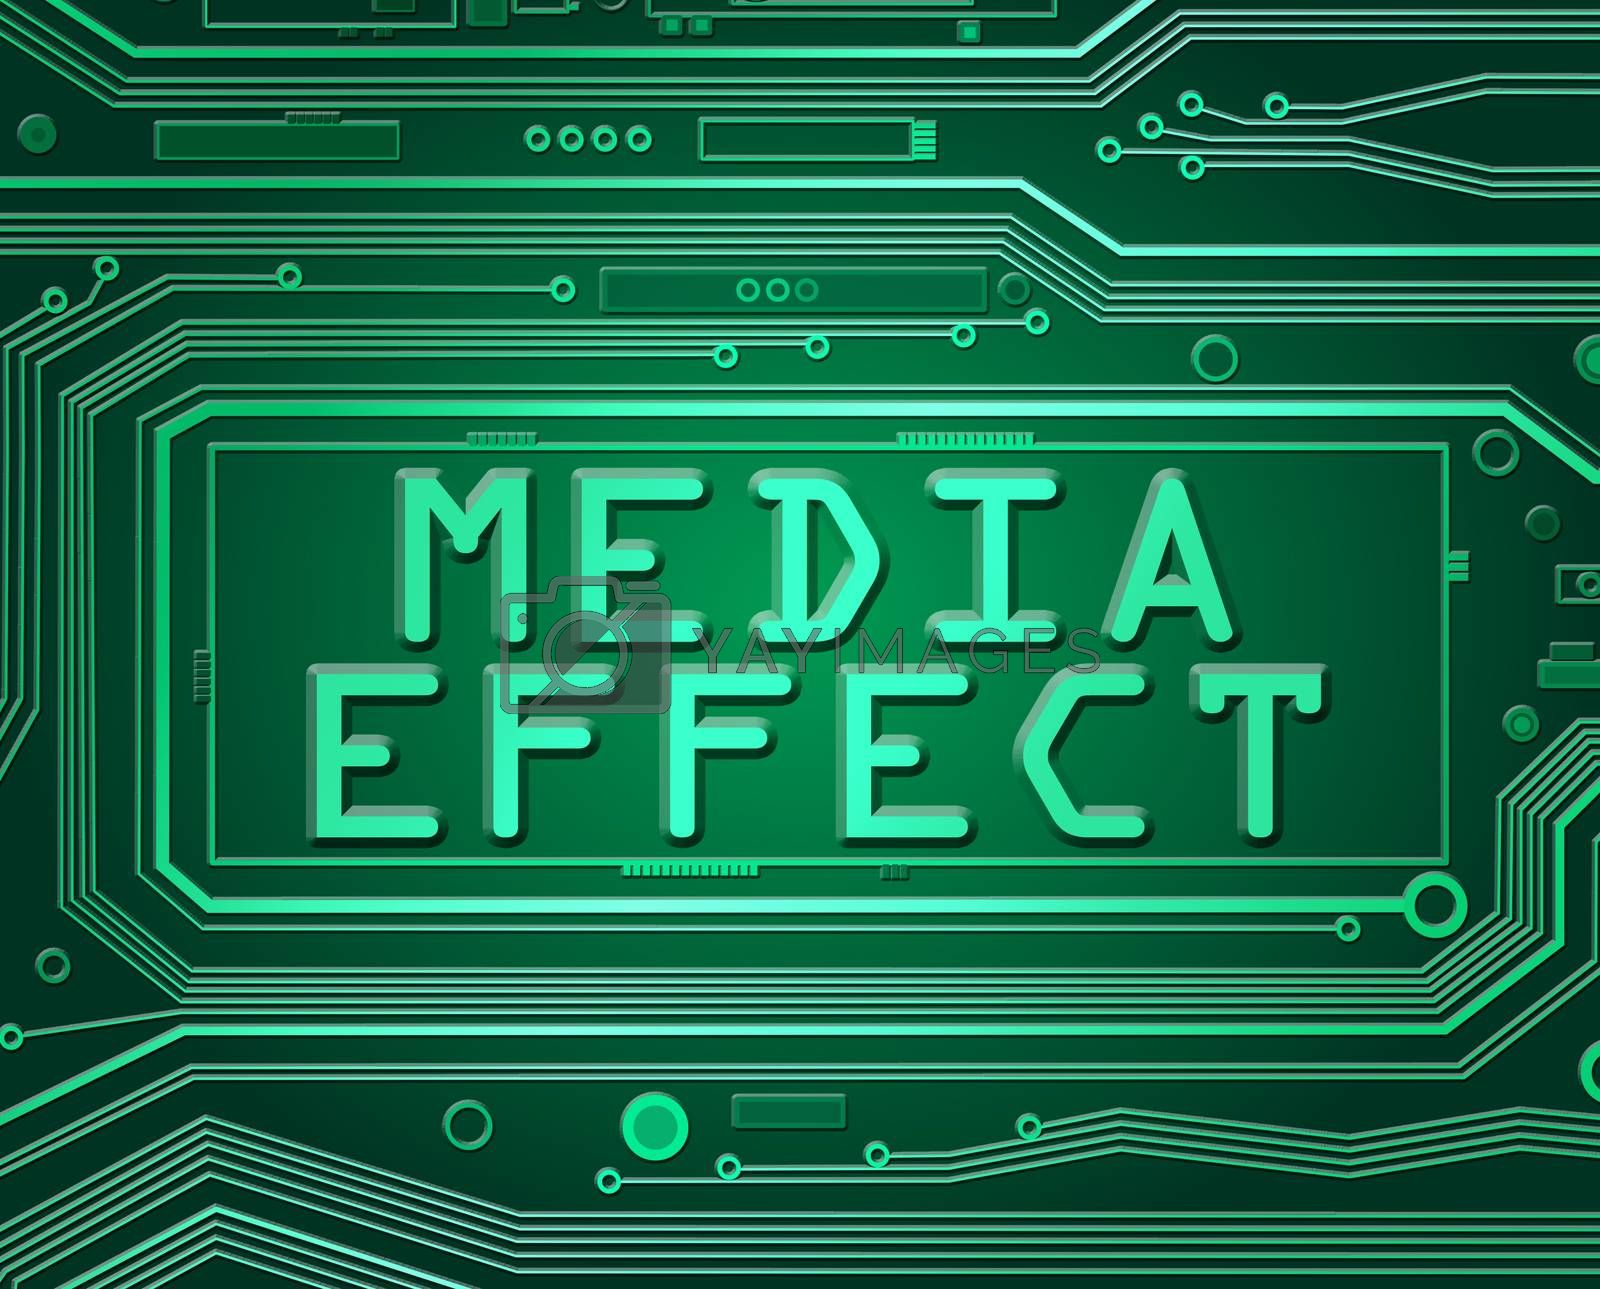 Abstract style illustration depicting printed circuit board components with a media effect concept.